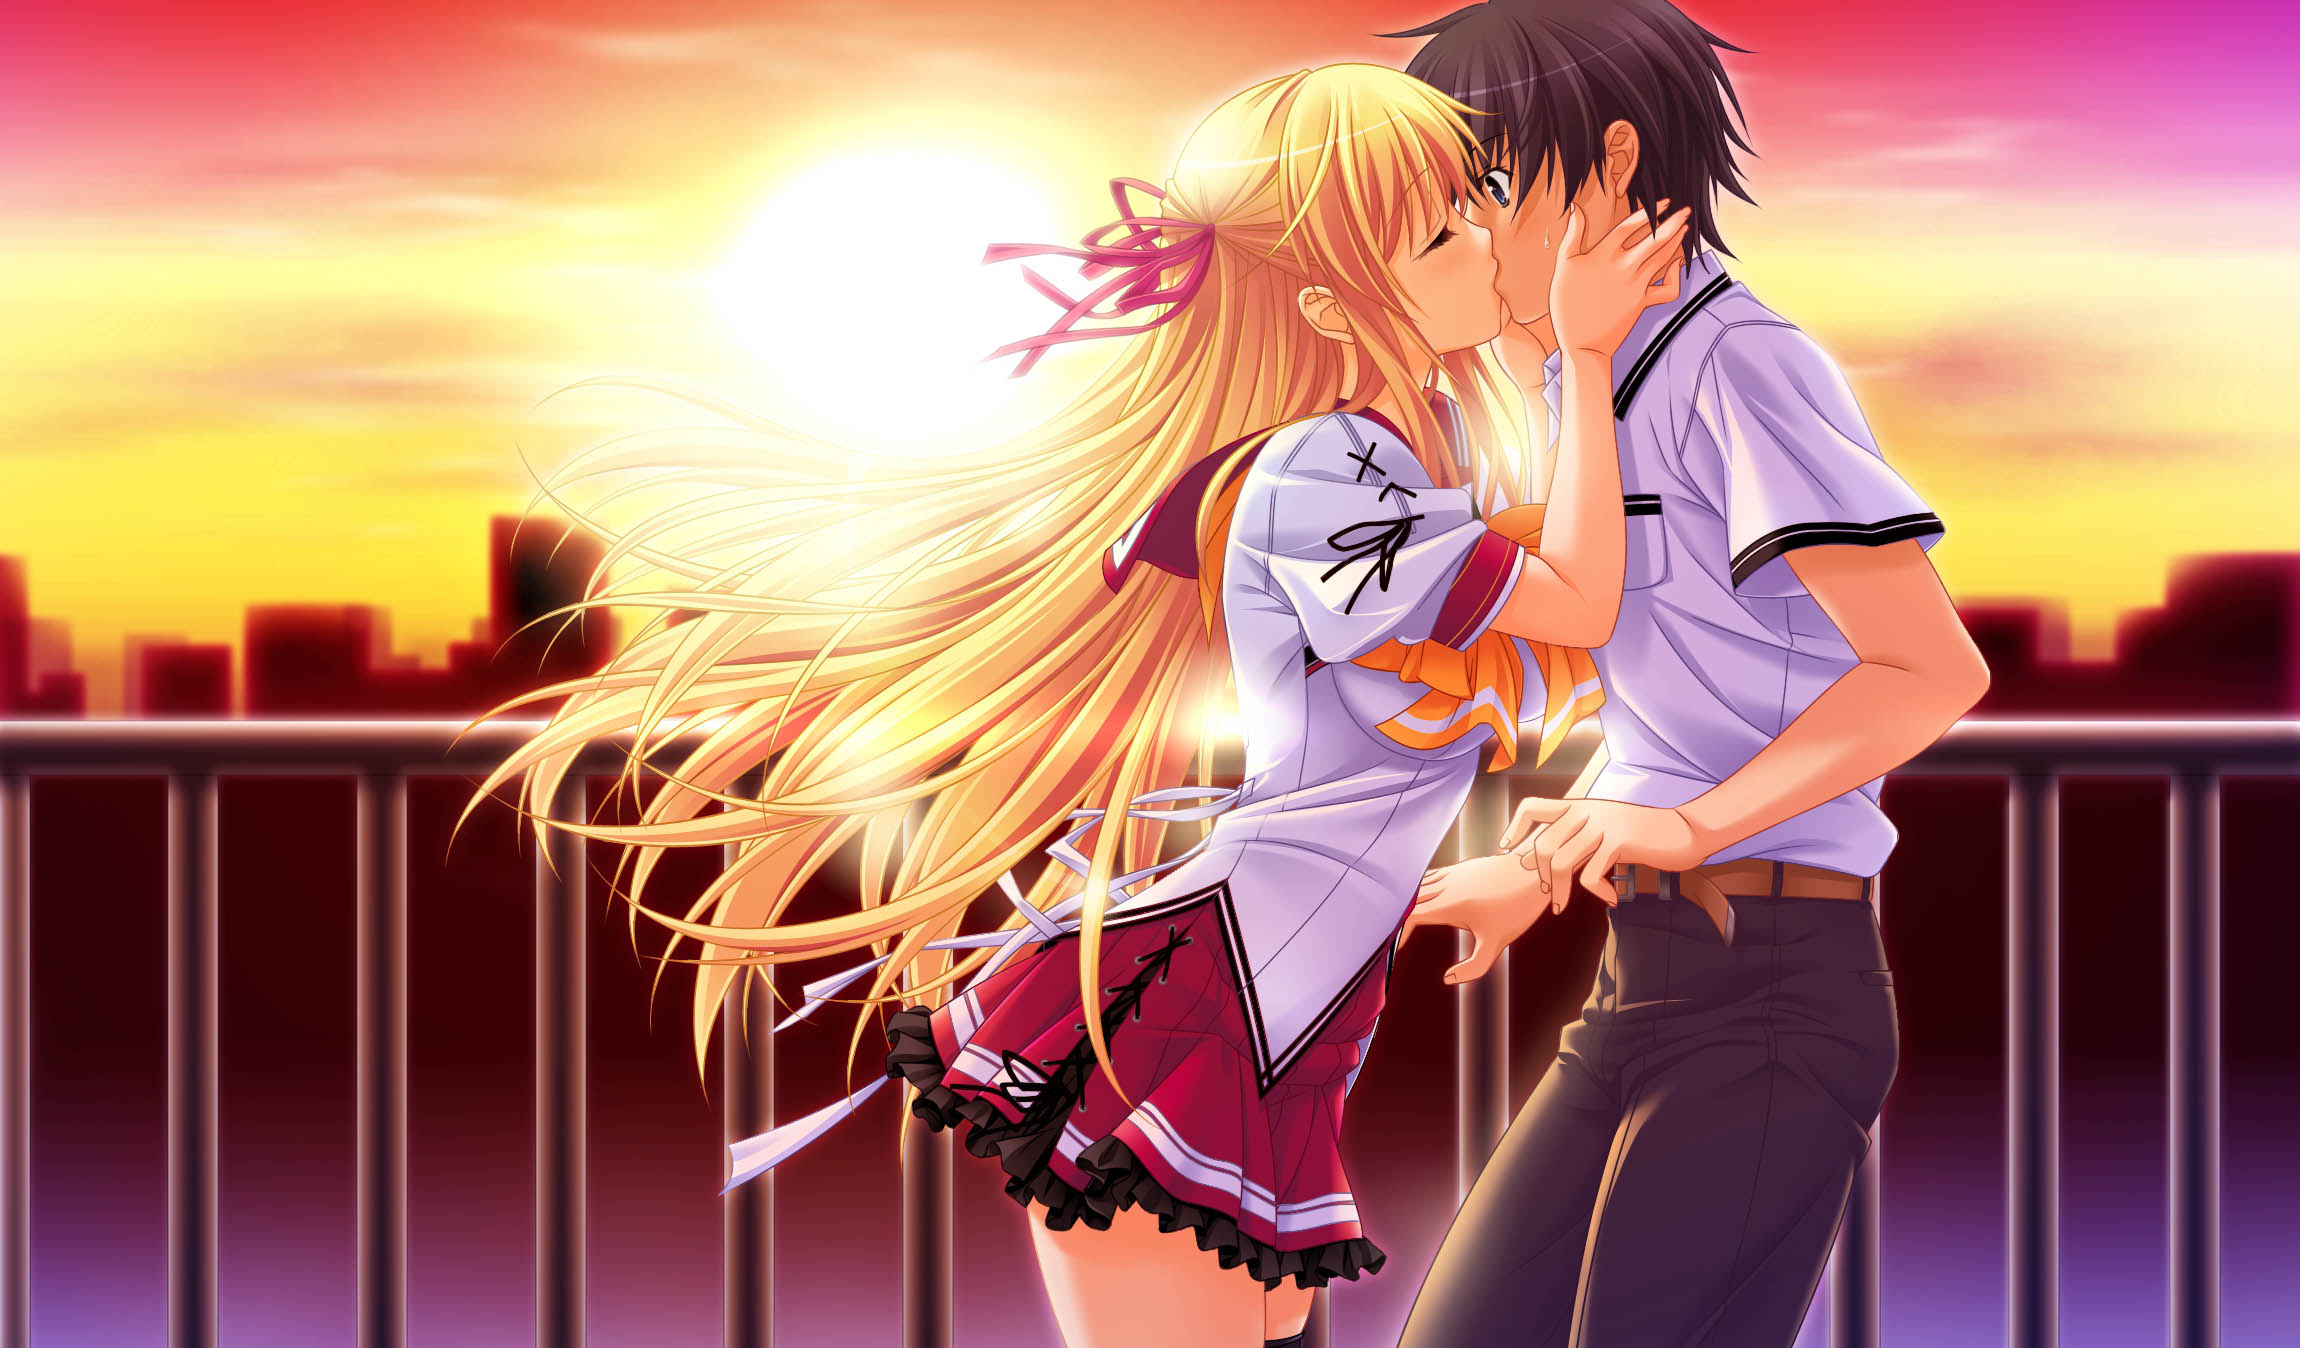 Love Wallpaper Full Hd Boy And Girl : Anime Kiss Wallpapers - WallpaperSafari